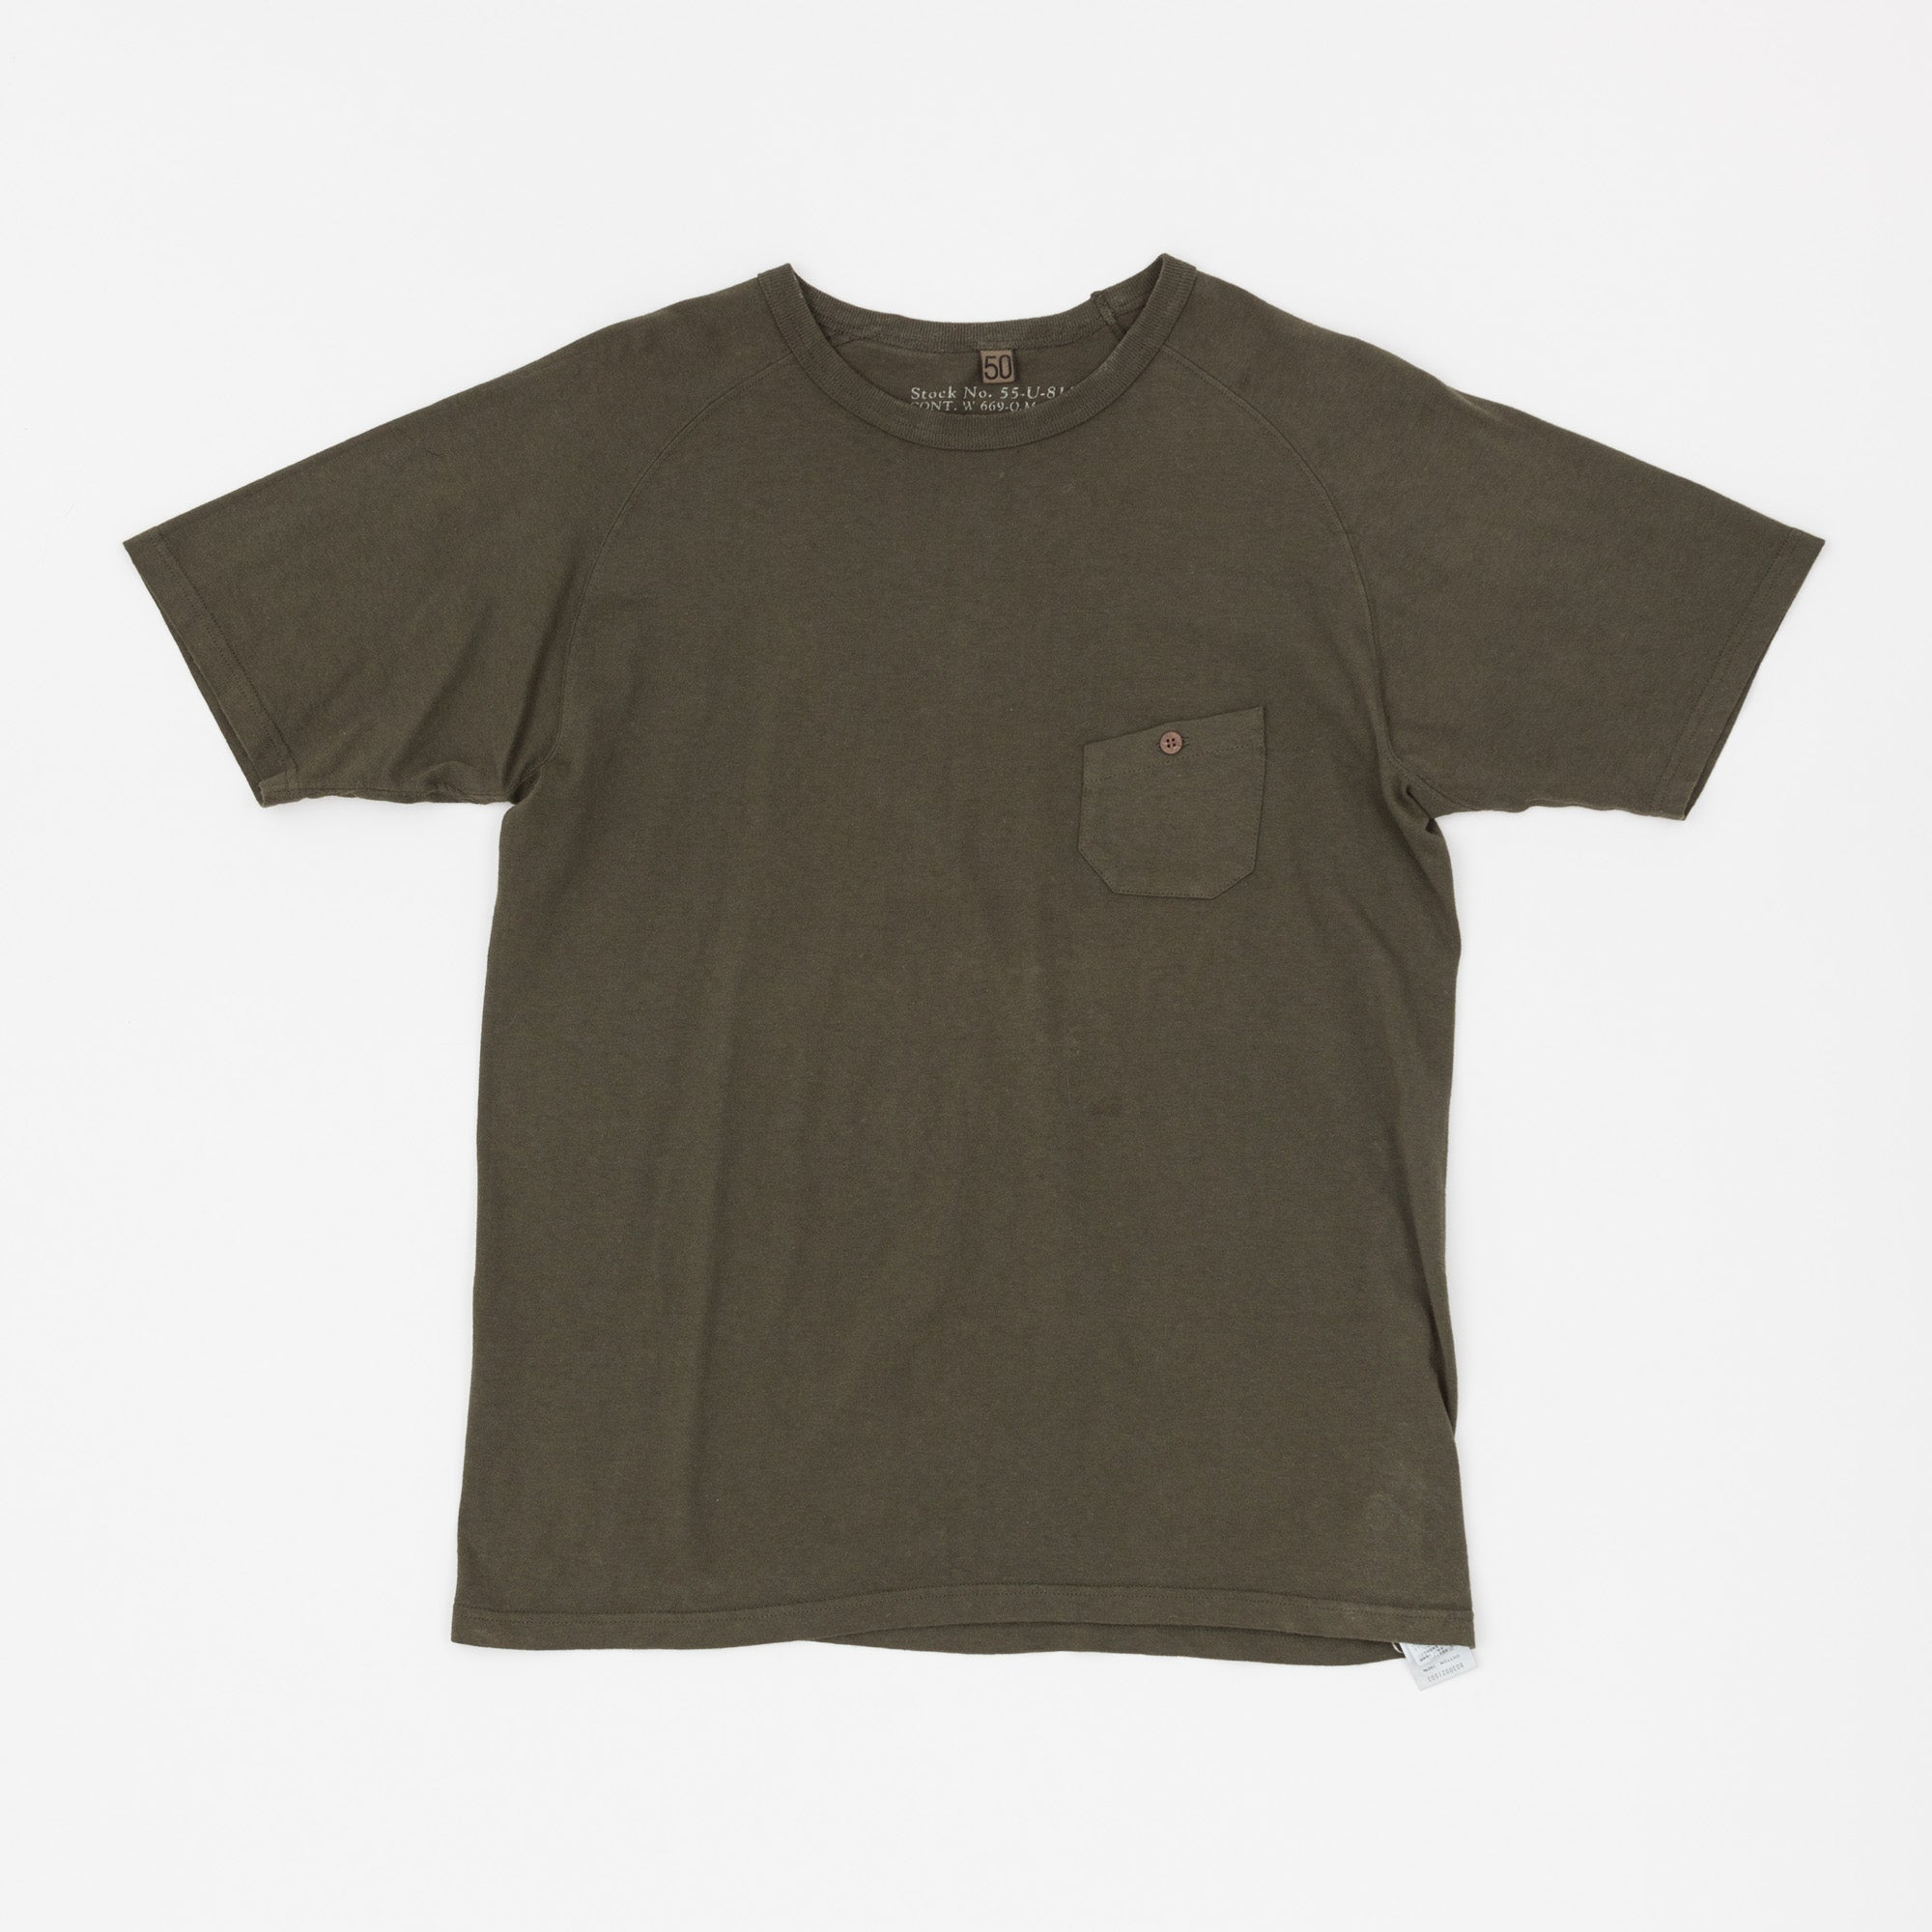 Nigel Cabourn Army T-Shirt